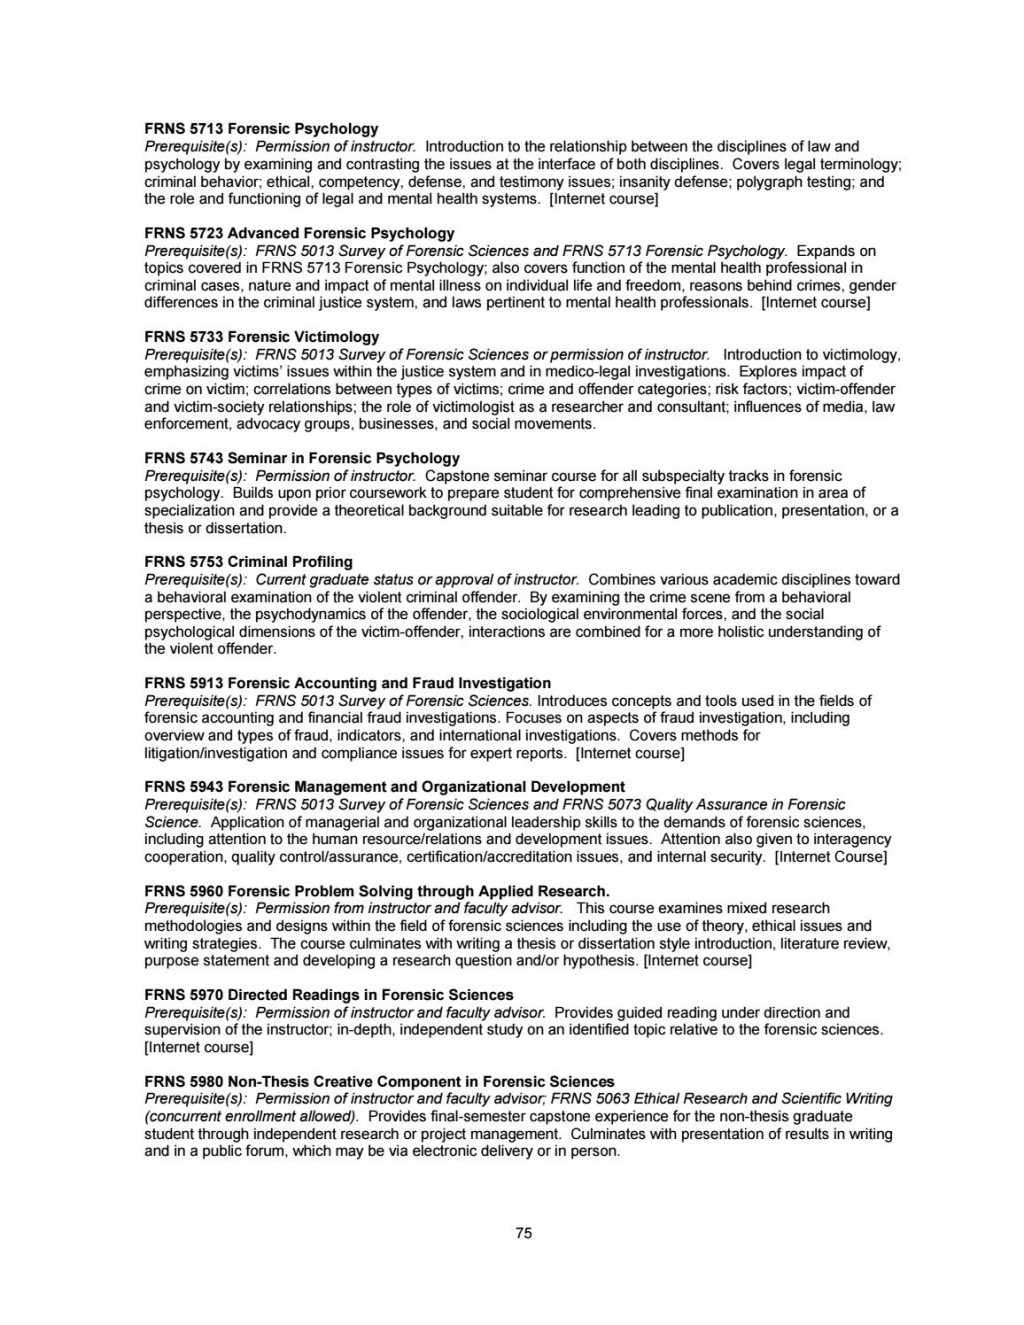 009 Research Paper Forensic Psychology Topics For Page 75 Unique Large